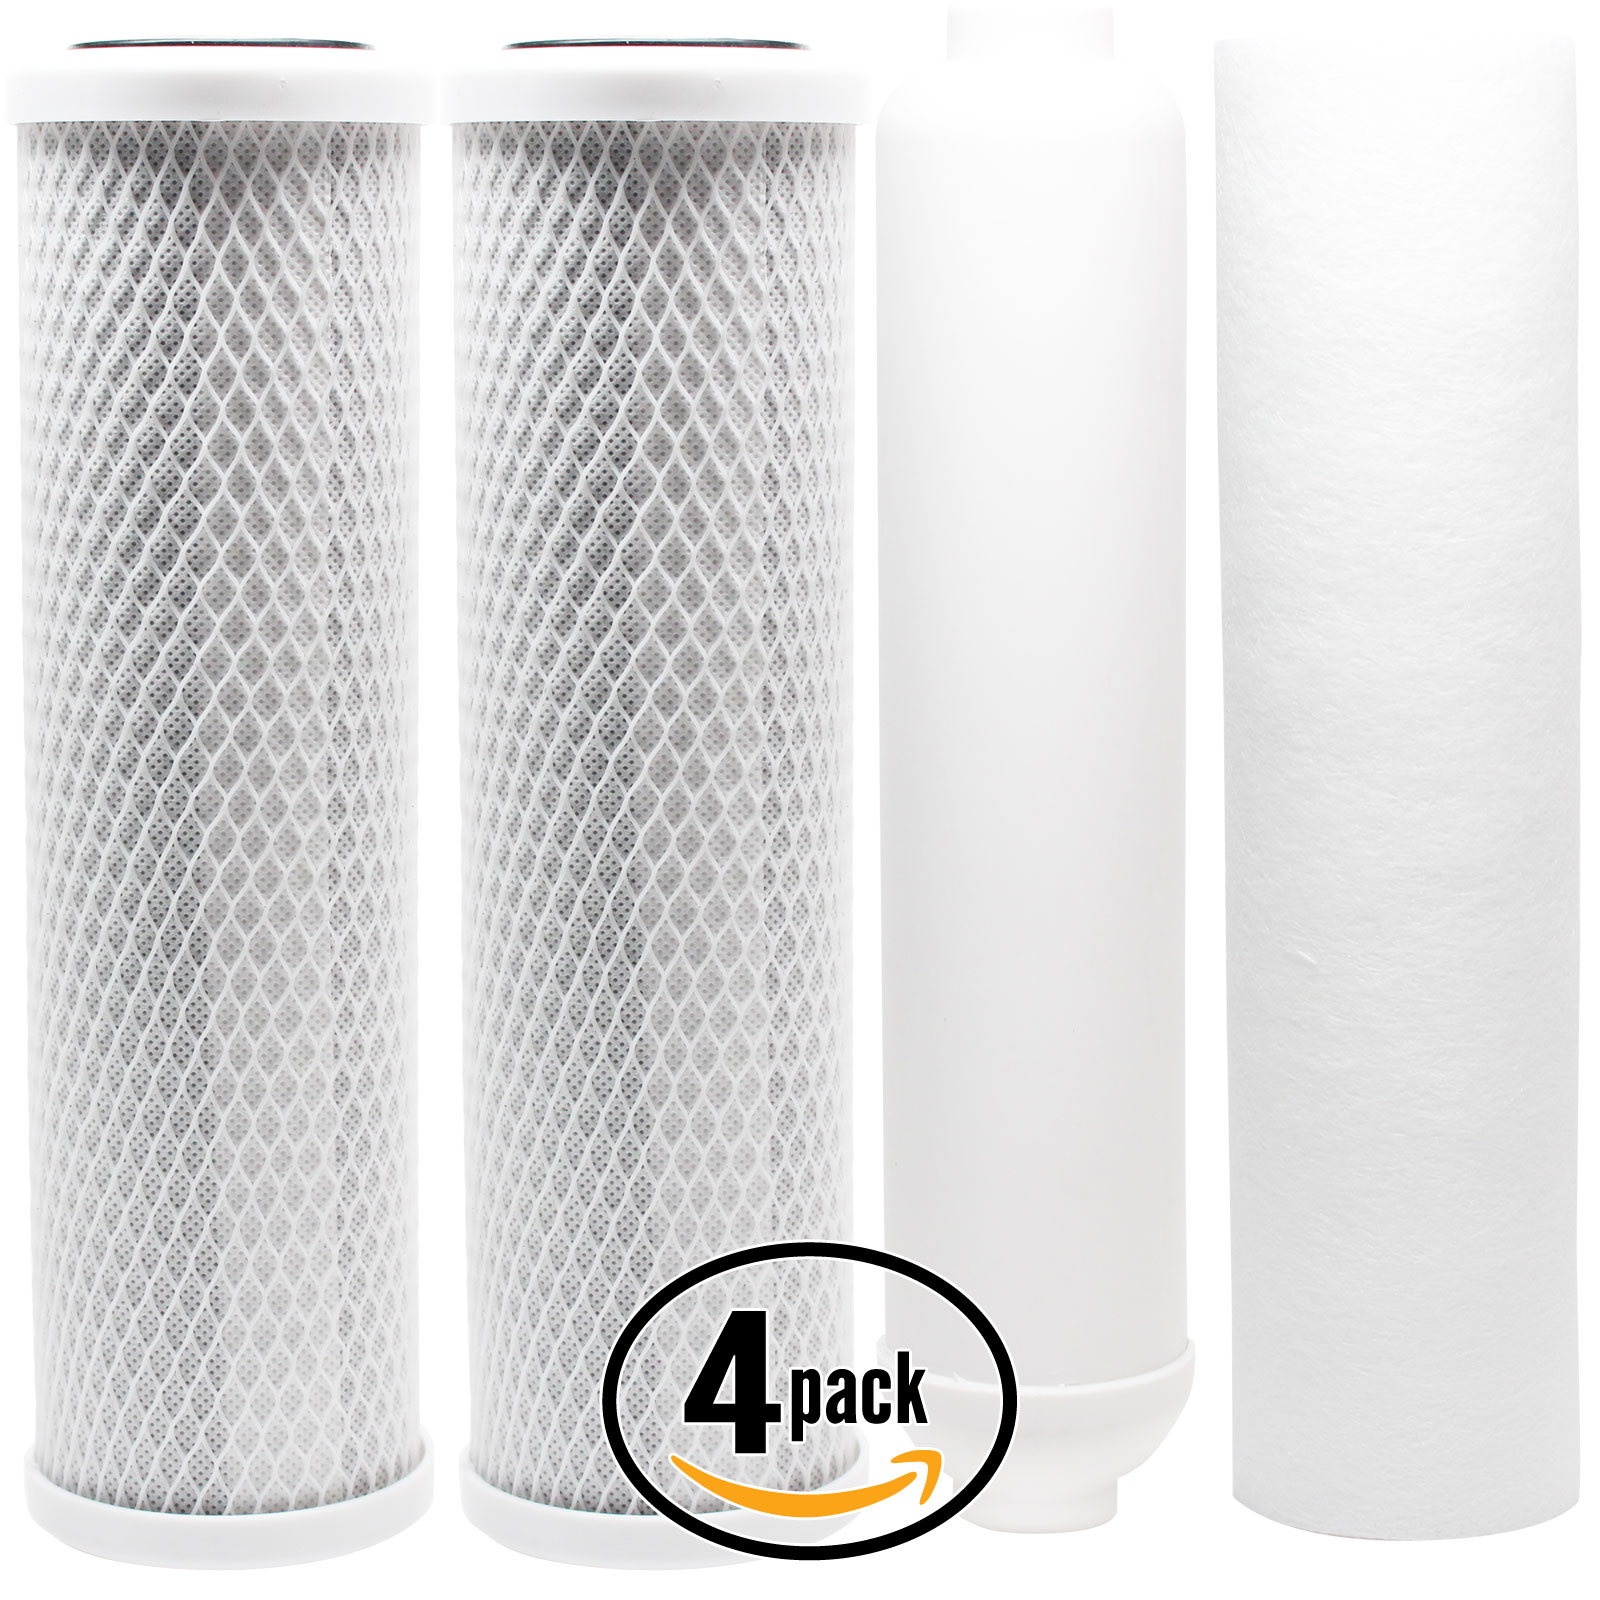 4-Pack Replacement Filter Kit for Proline Proline Gold RO System - Includes Carbon Block Filters, PP Sediment Filter & Inline Filter Cartridge - Denali Pure Brand